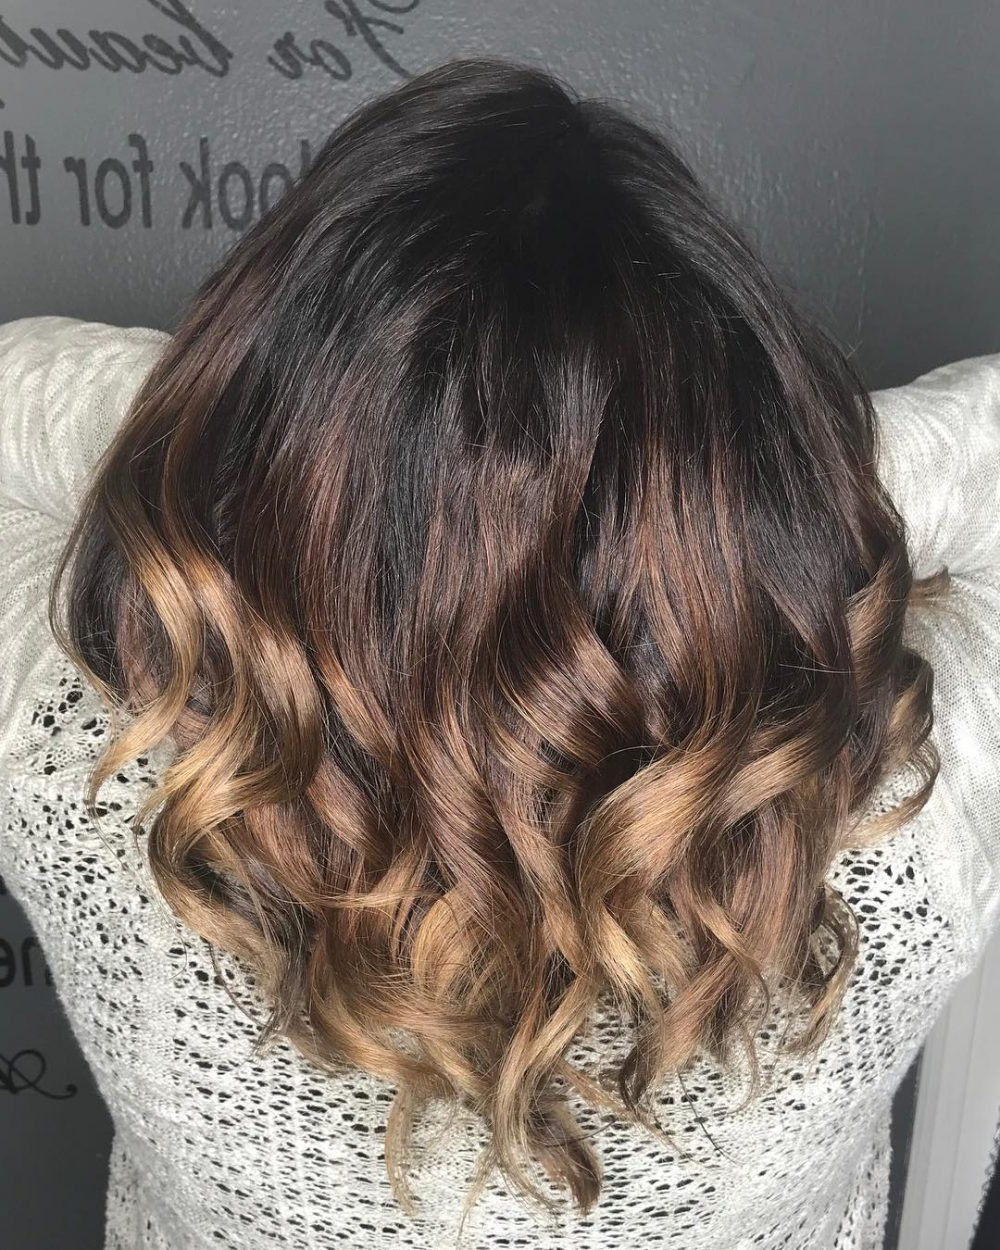 36 Top Short Ombre Hair Ideas Of 2018 Intended For Short Bob Hairstyles With Dimensional Coloring (View 9 of 20)